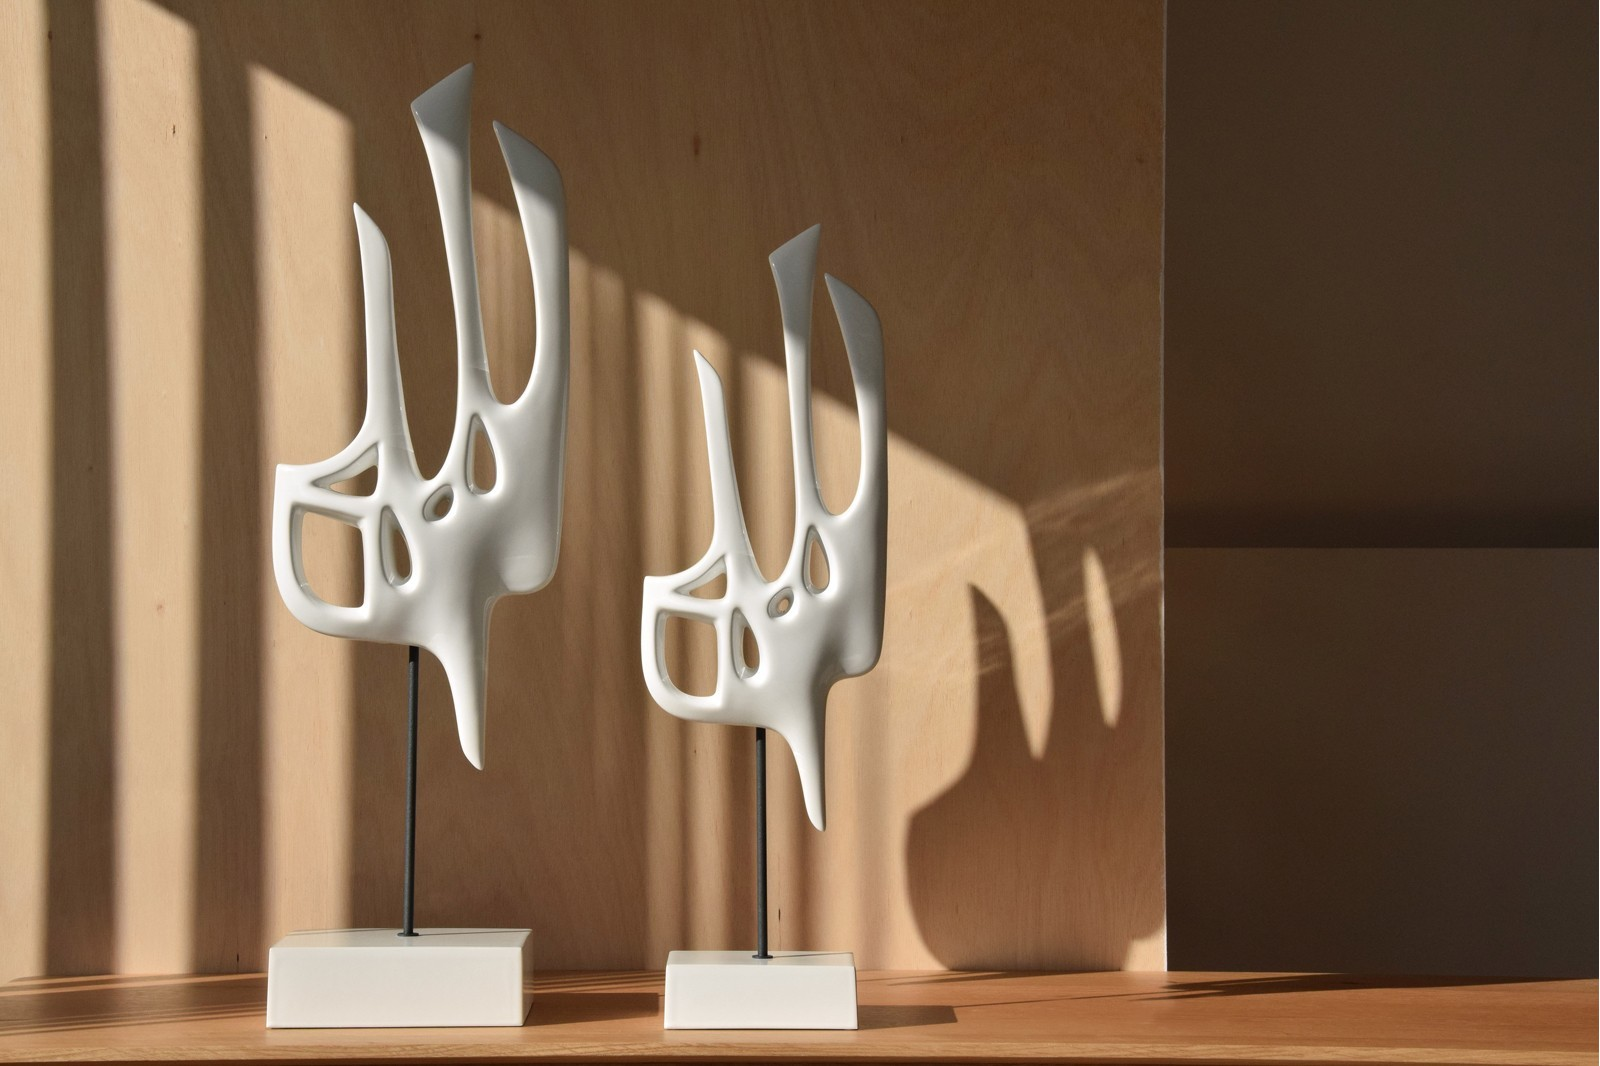 ABSTRACT BIRD COLLECTION. GLOSS WHITE CERAMIC SCULPTURE